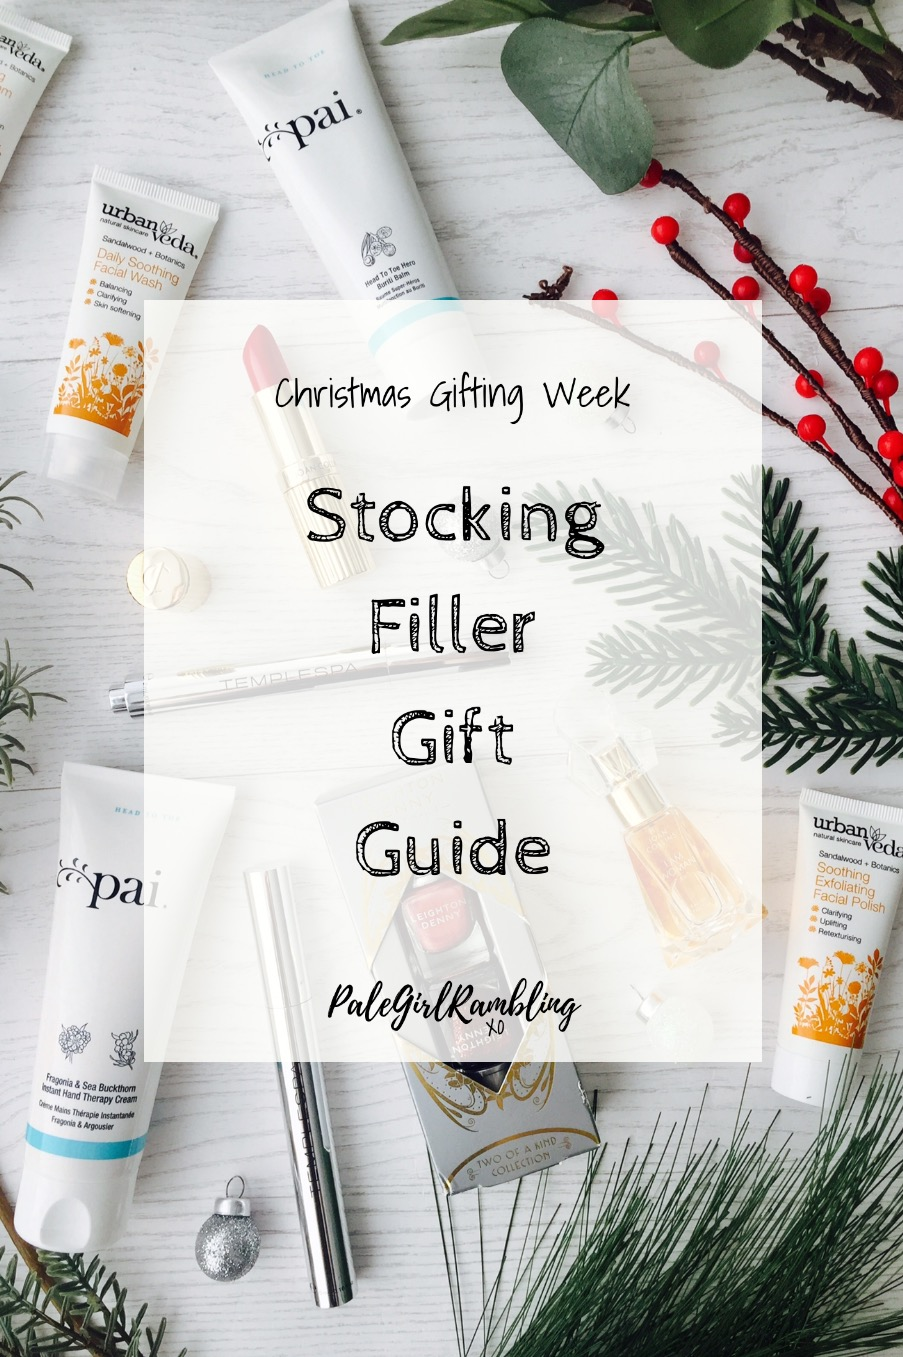 Stocking filler gift guide ideas